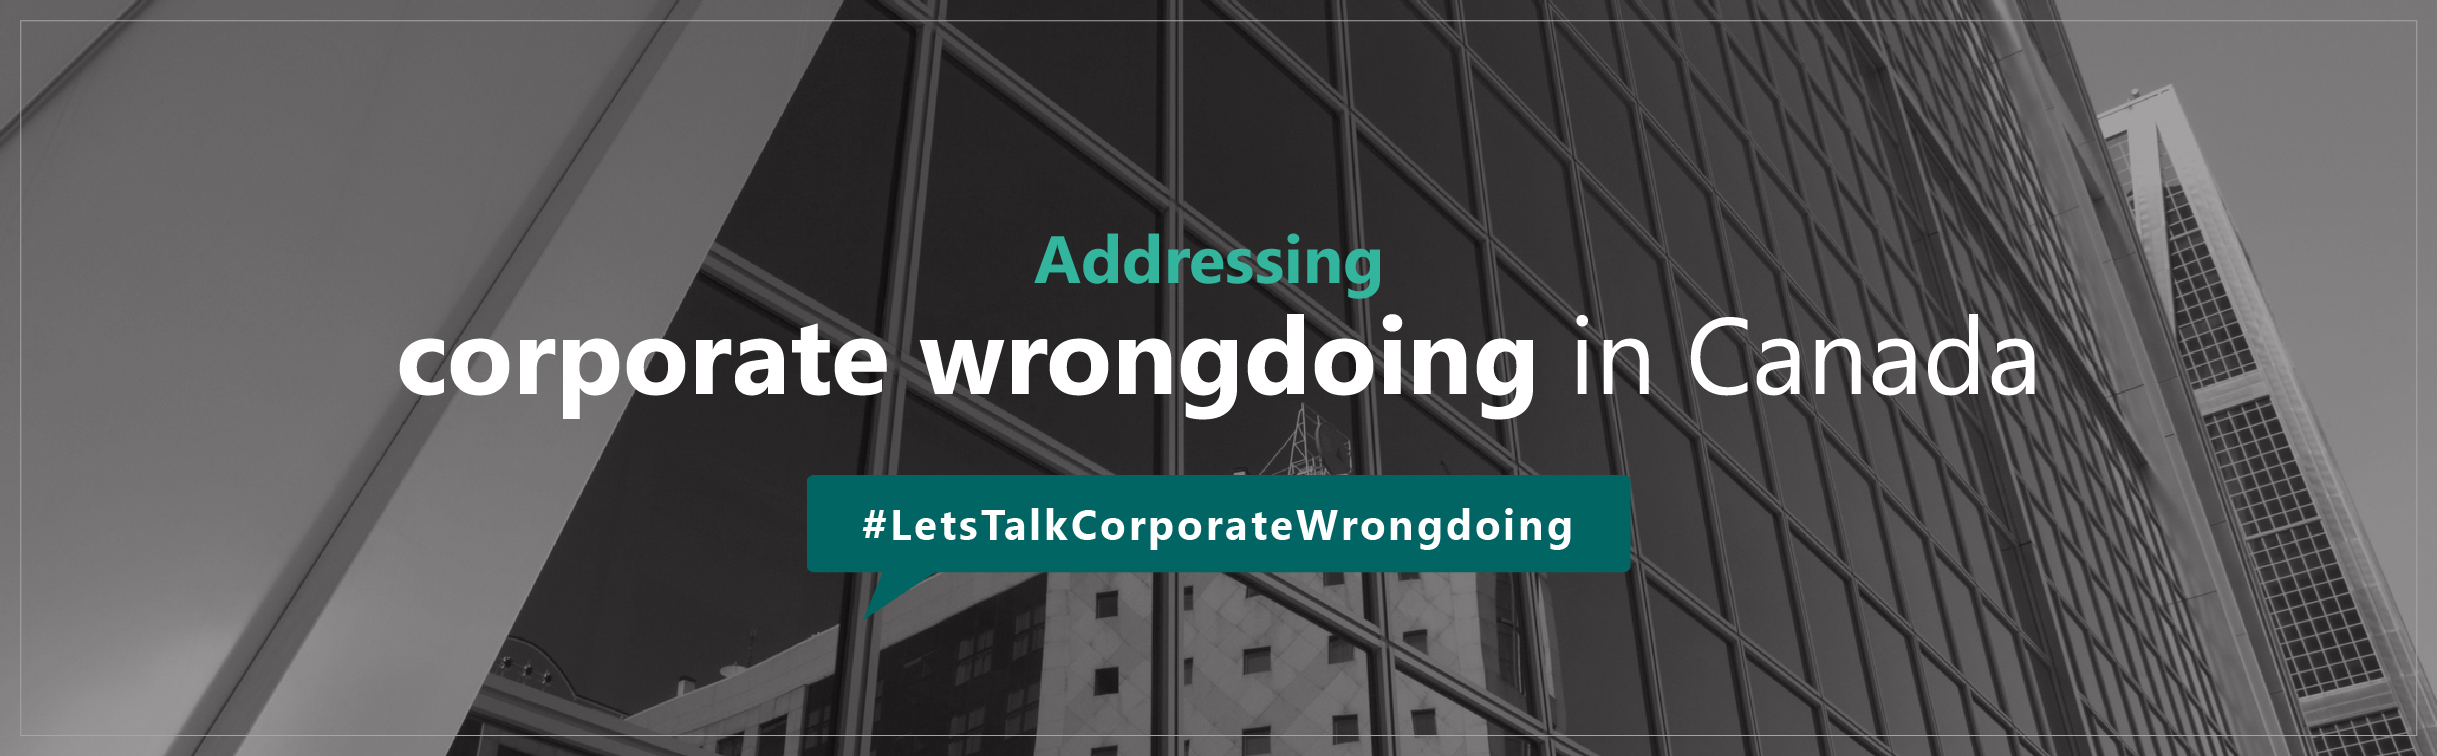 Addressing Corporate Wrongdoing in Canada - #LetsTalkCorporateWrongdoing